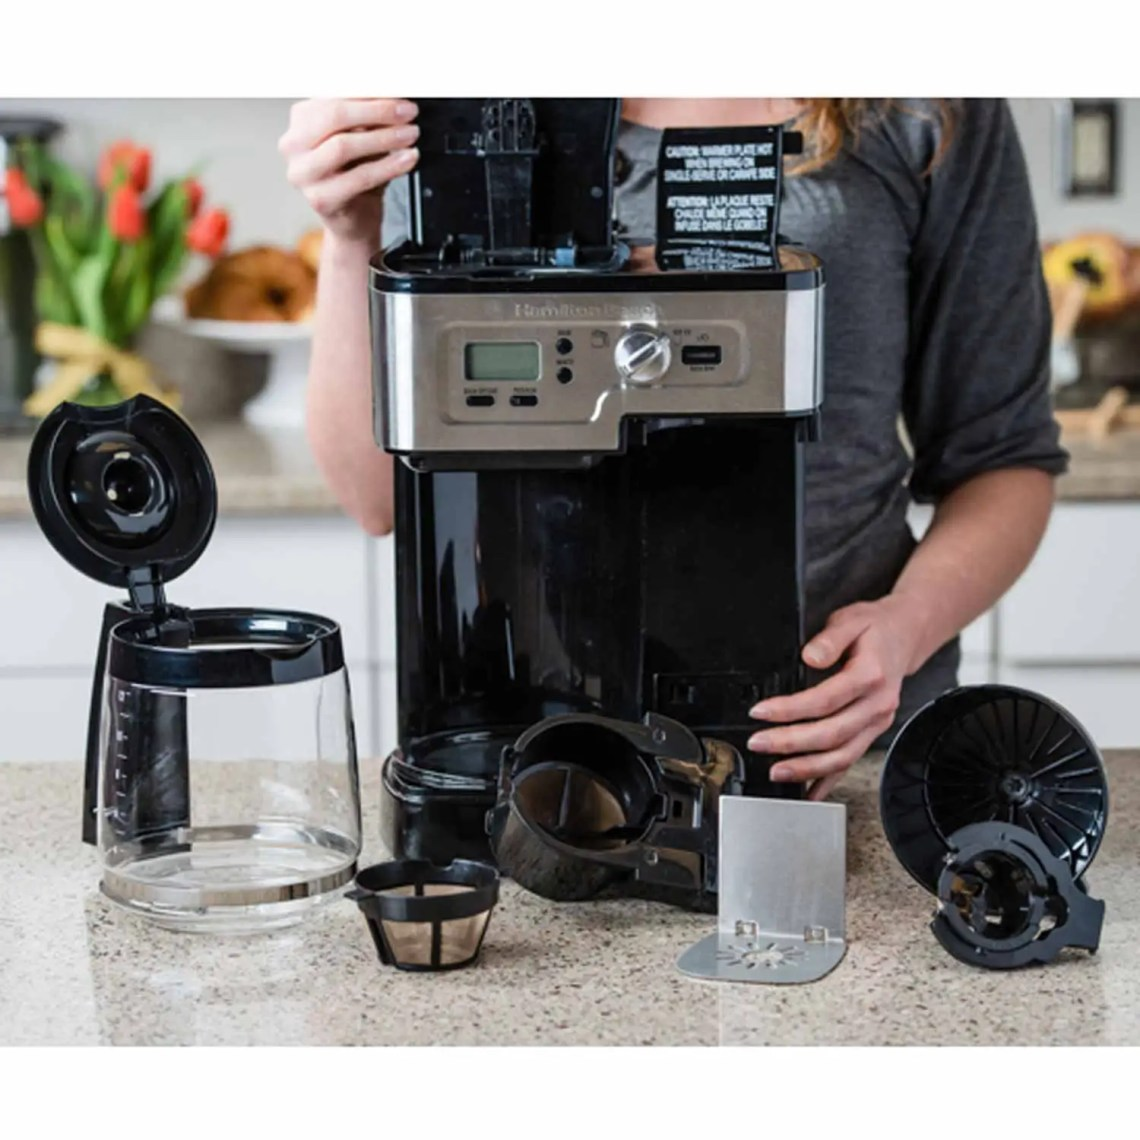 Image Result For How To Clean The Inside Of A Coffee Makera